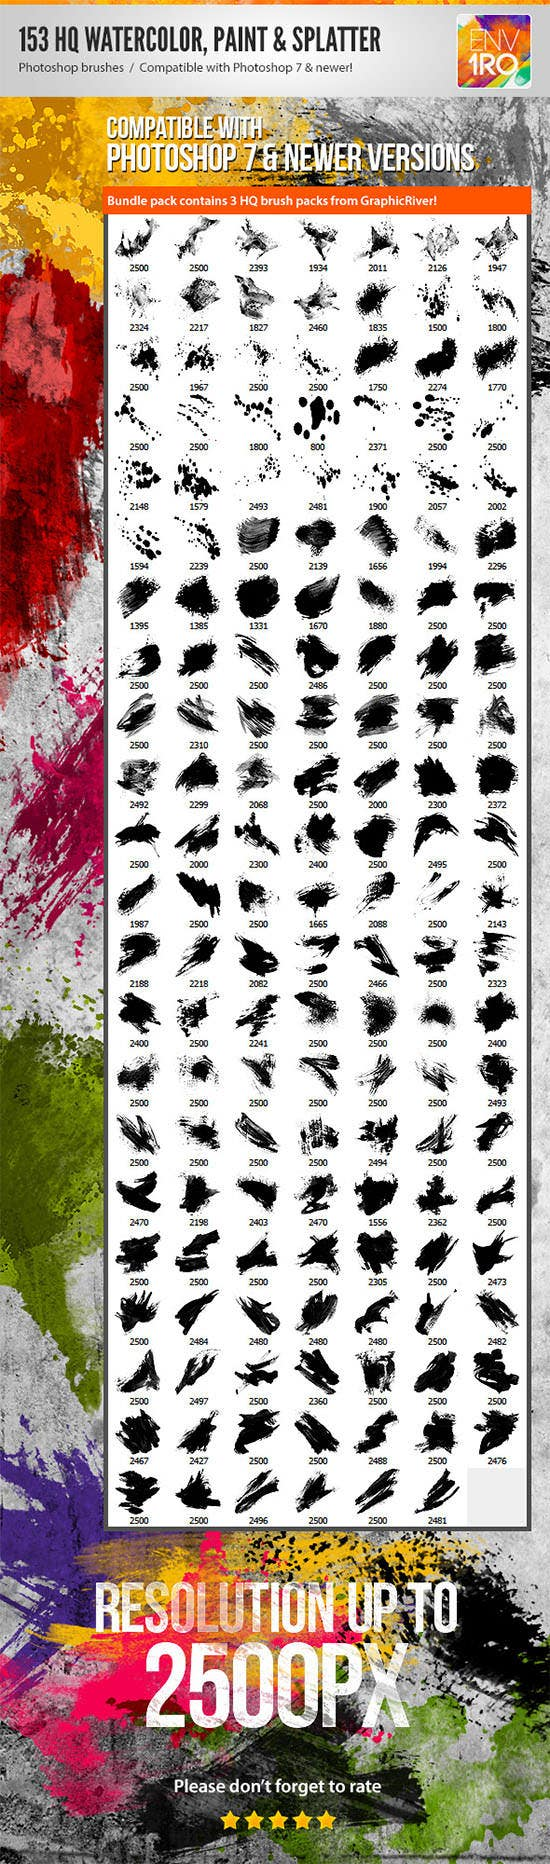 153 watercolor paint splatter photoshop brushes